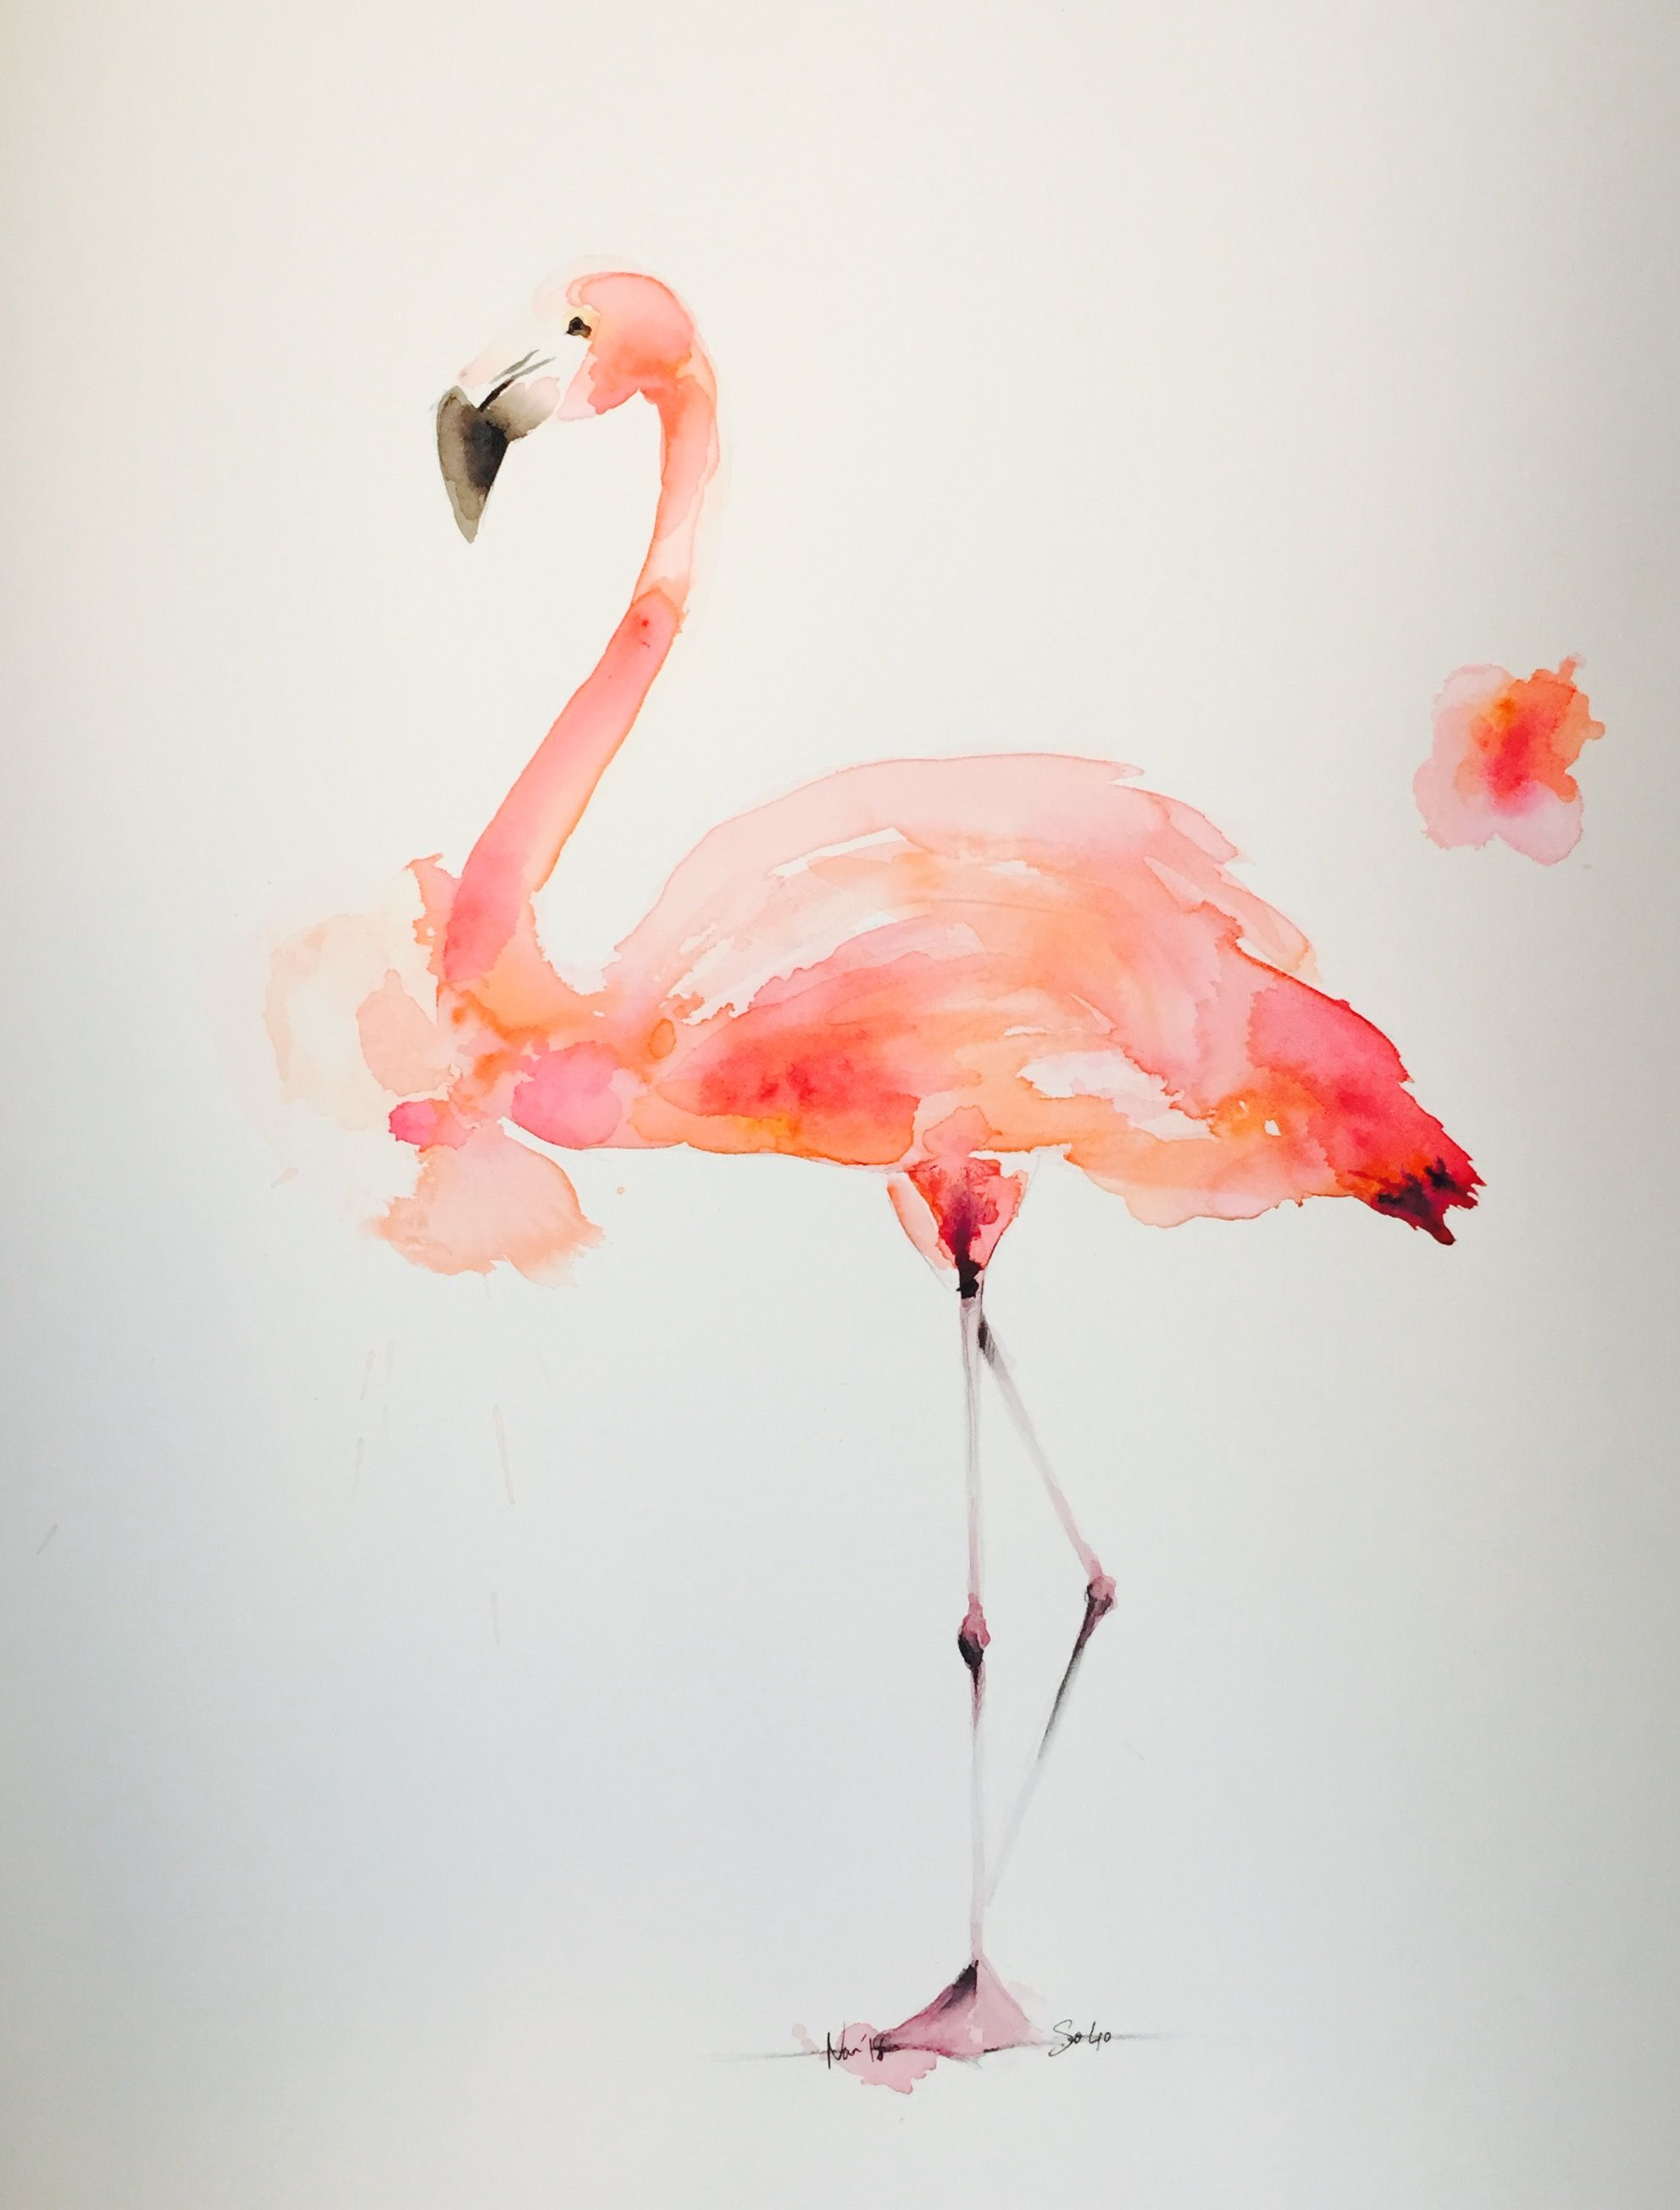 Flamant Rose Aquarelle Pink Flamingo Watercolor Pinkflamingo